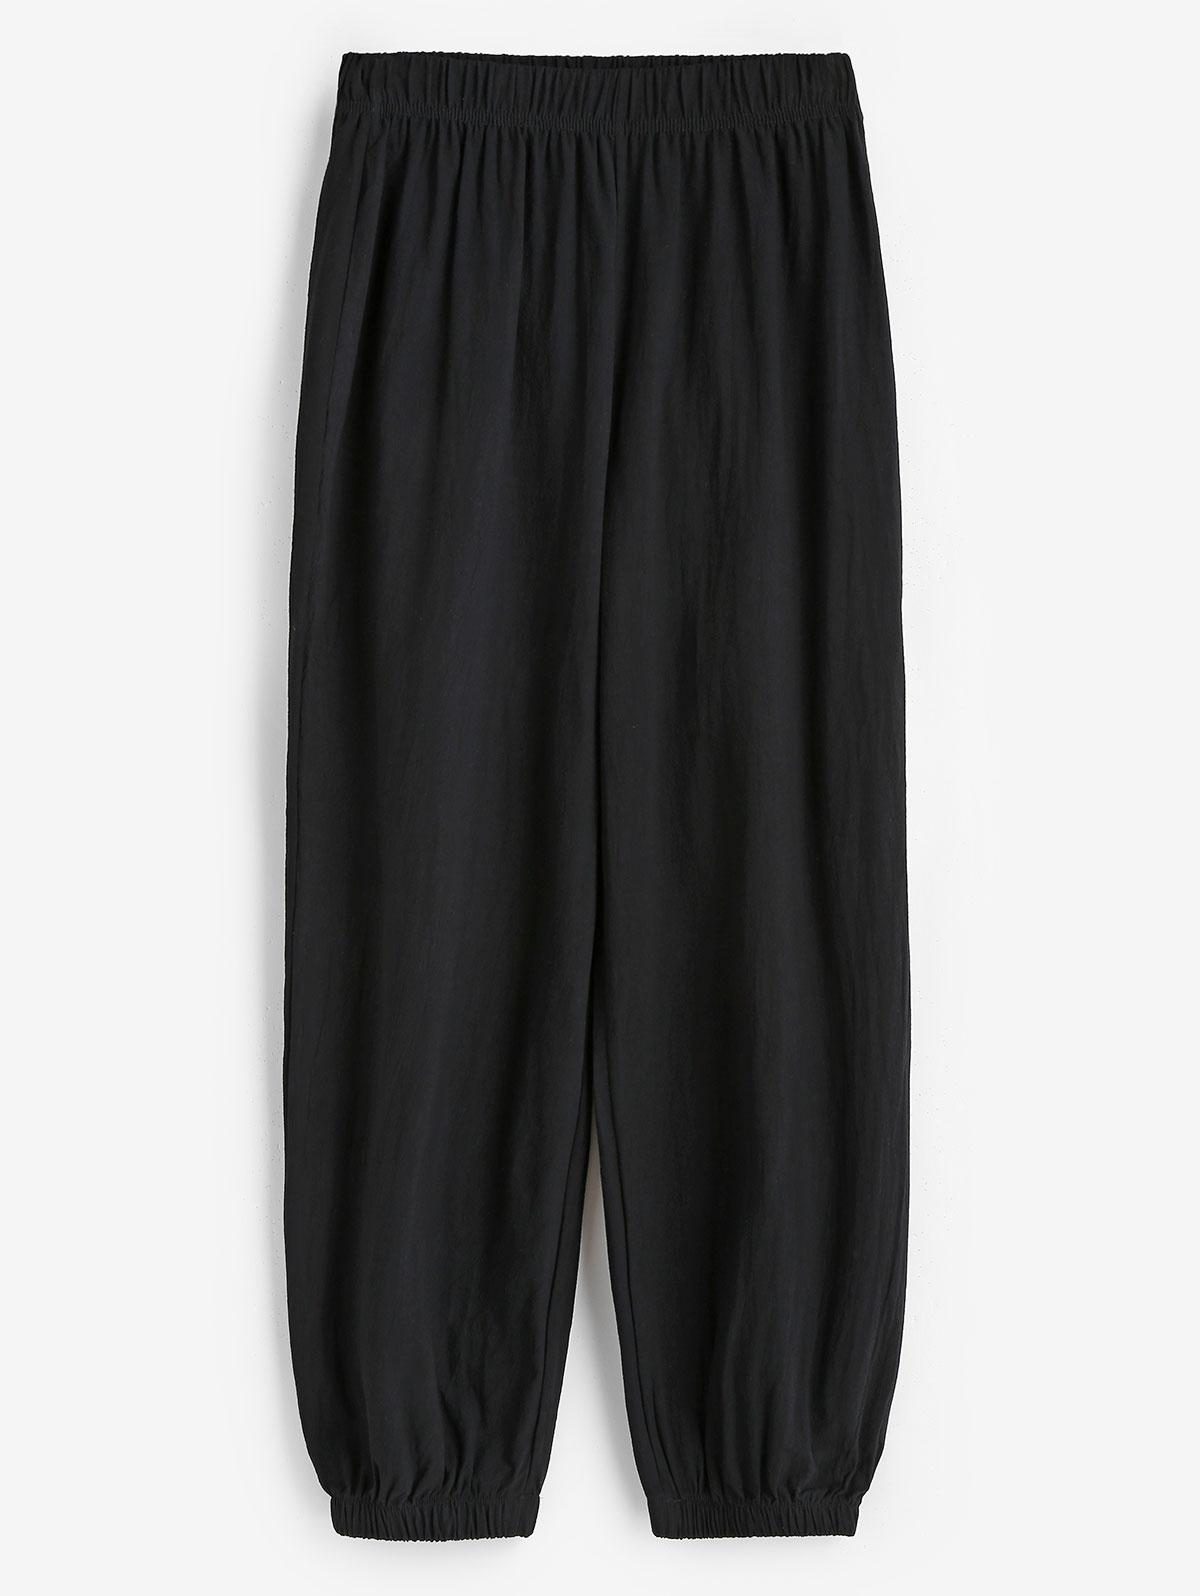 Elasticated Cuffs Pull On Pants